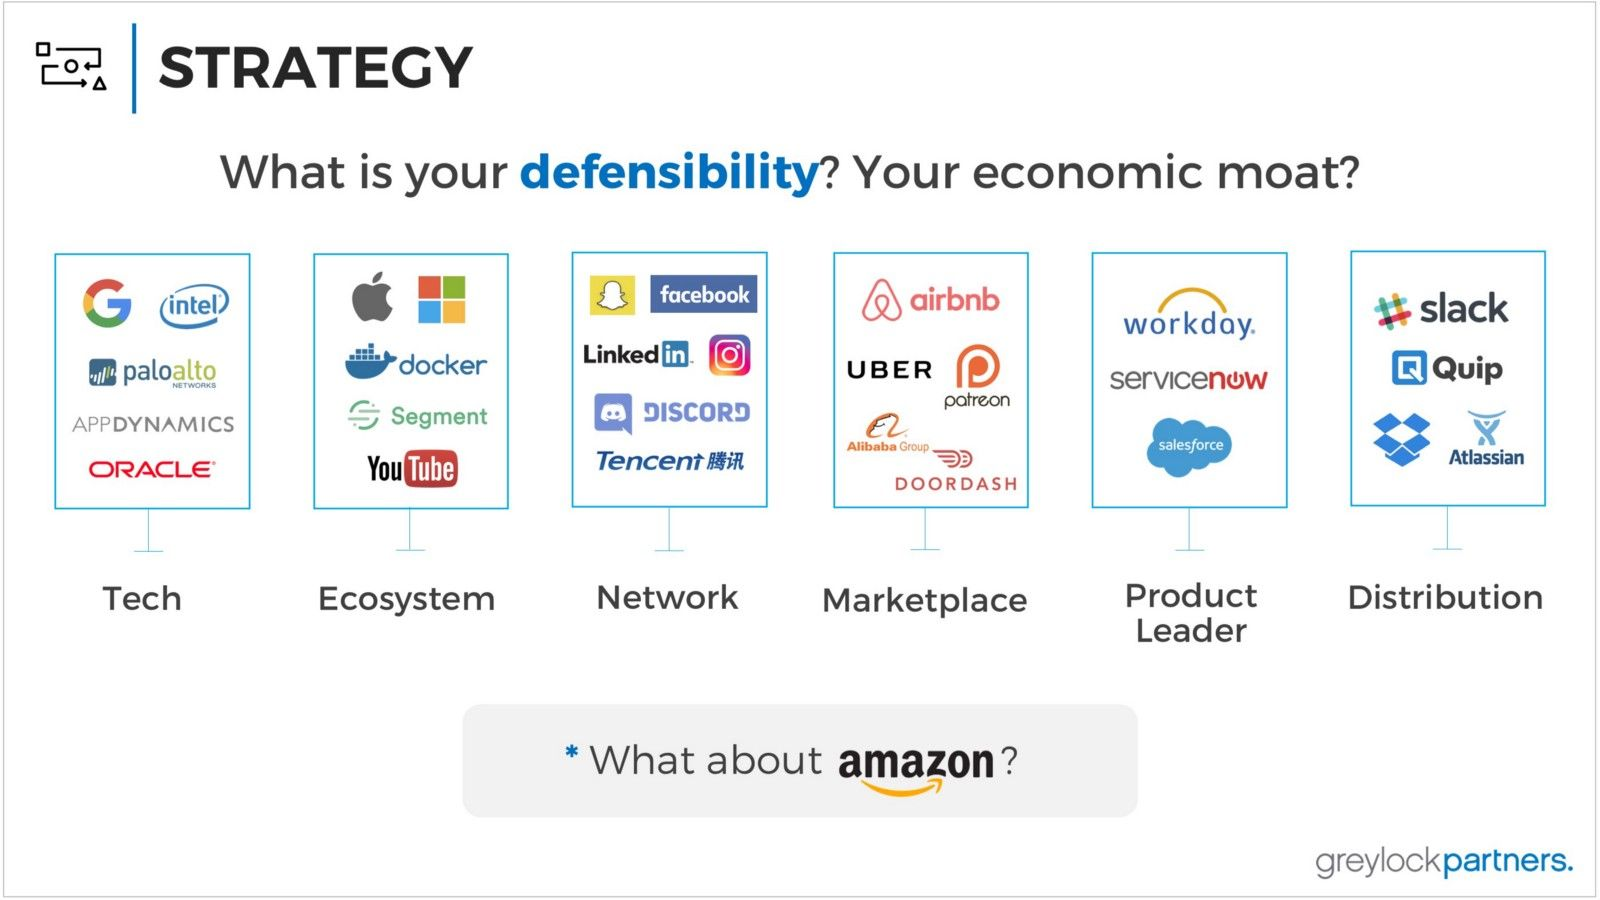 Strategy What Is Your Defensibility Your Economic Moat Start Up Segmentation Quip